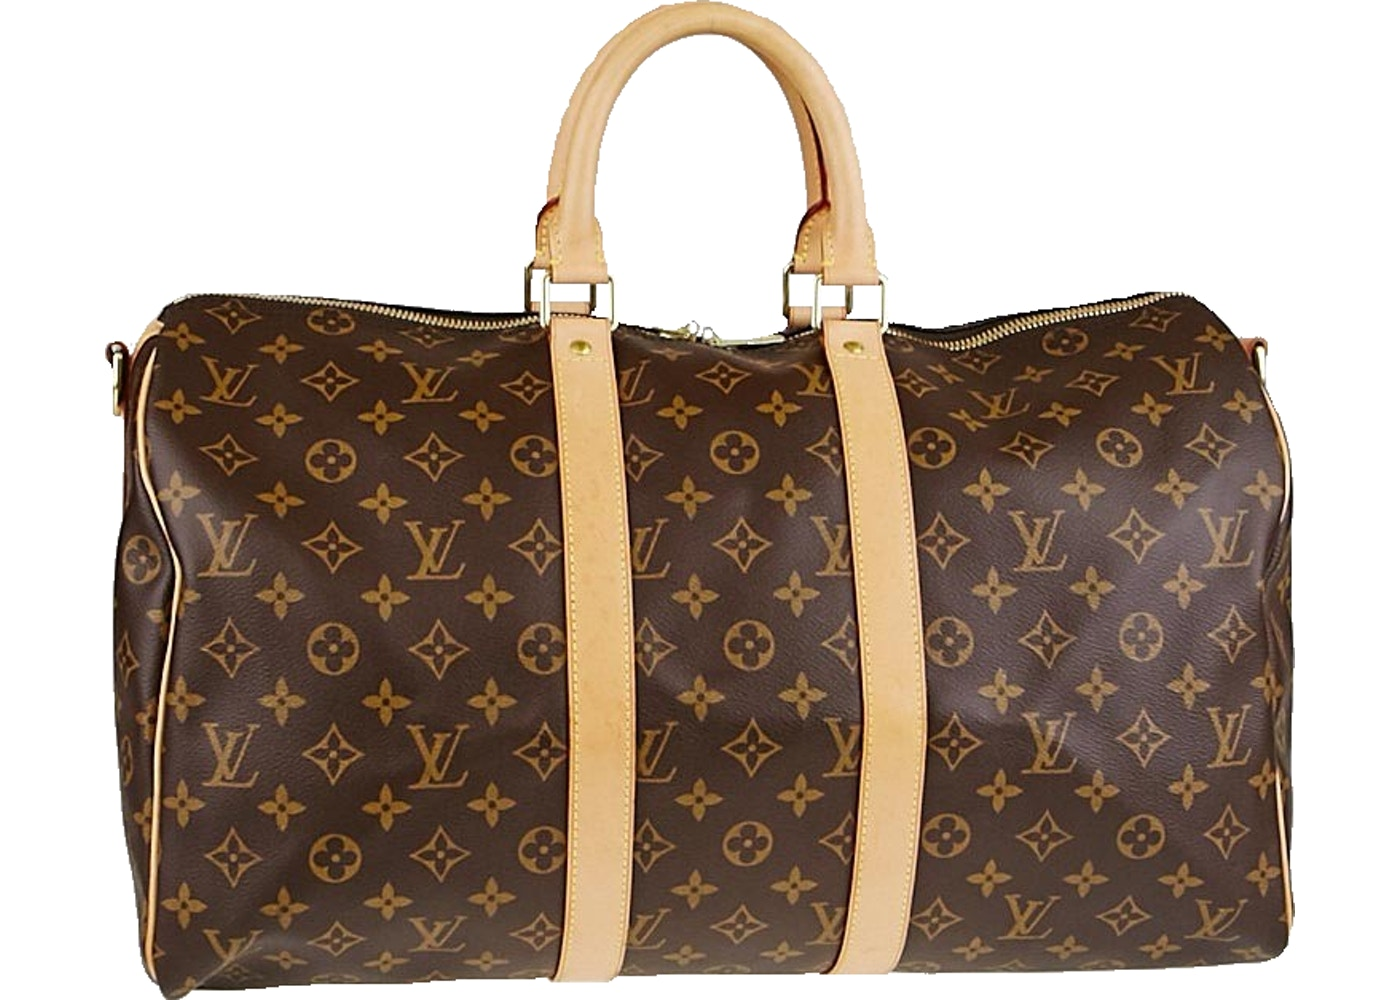 b5a9b739ad01 Louis Vuitton Keepall Monogram 45 Brown. Monogram 45 Brown